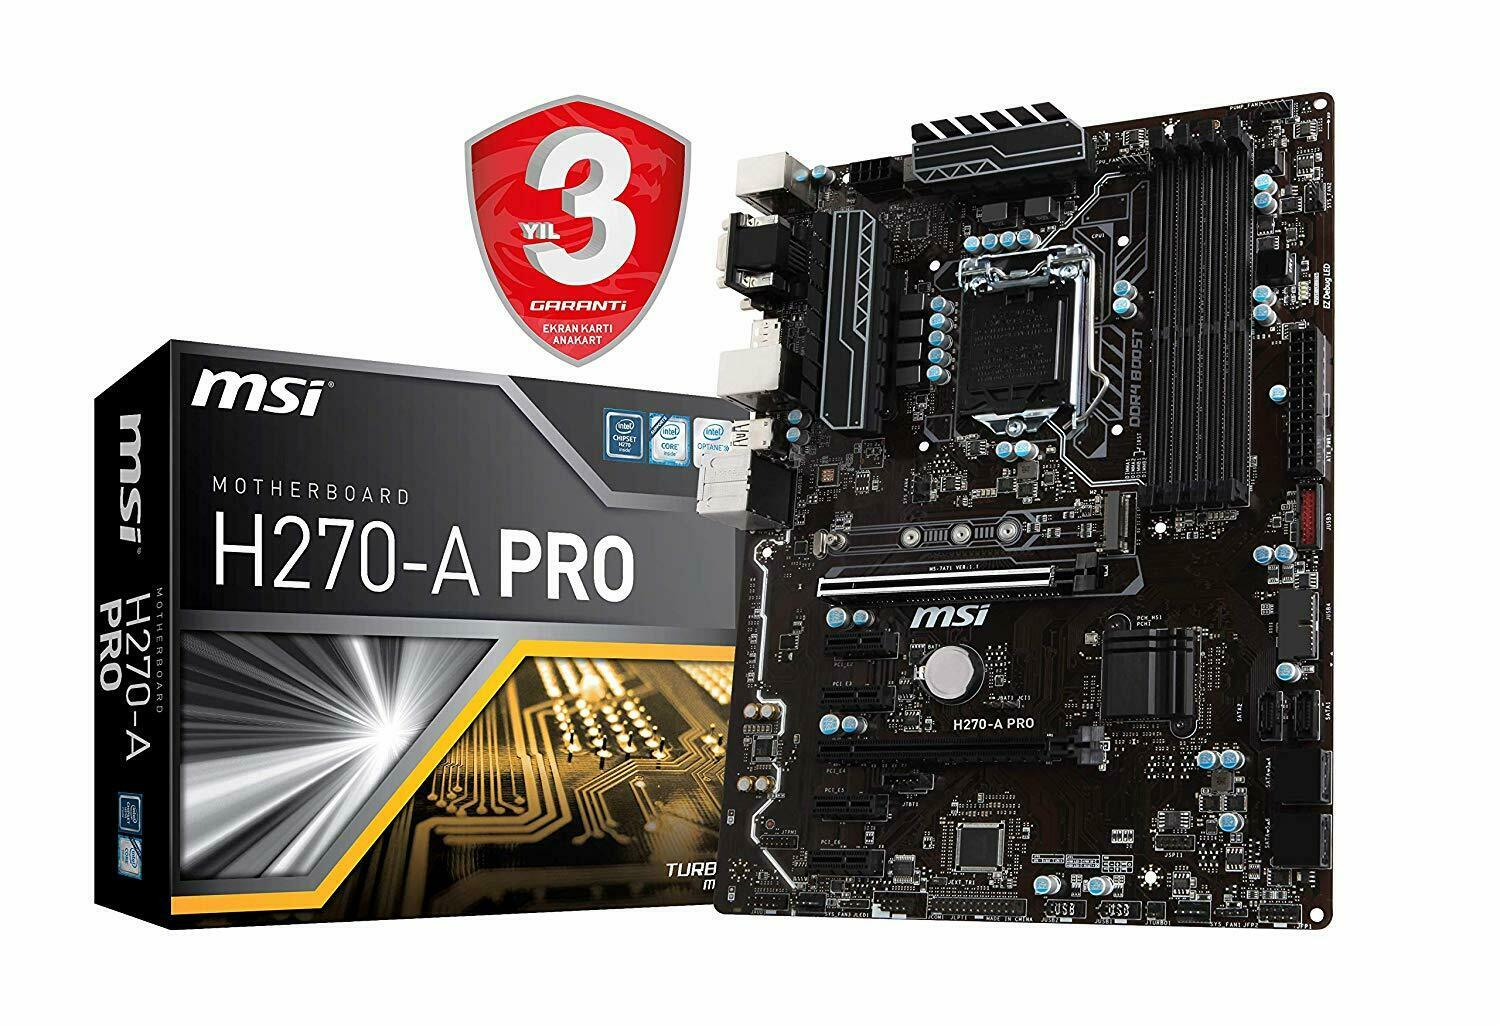 MSI H270-A PRO Motherboard Crytocurrency BTC Intel H270/ ATX Motherboard 1